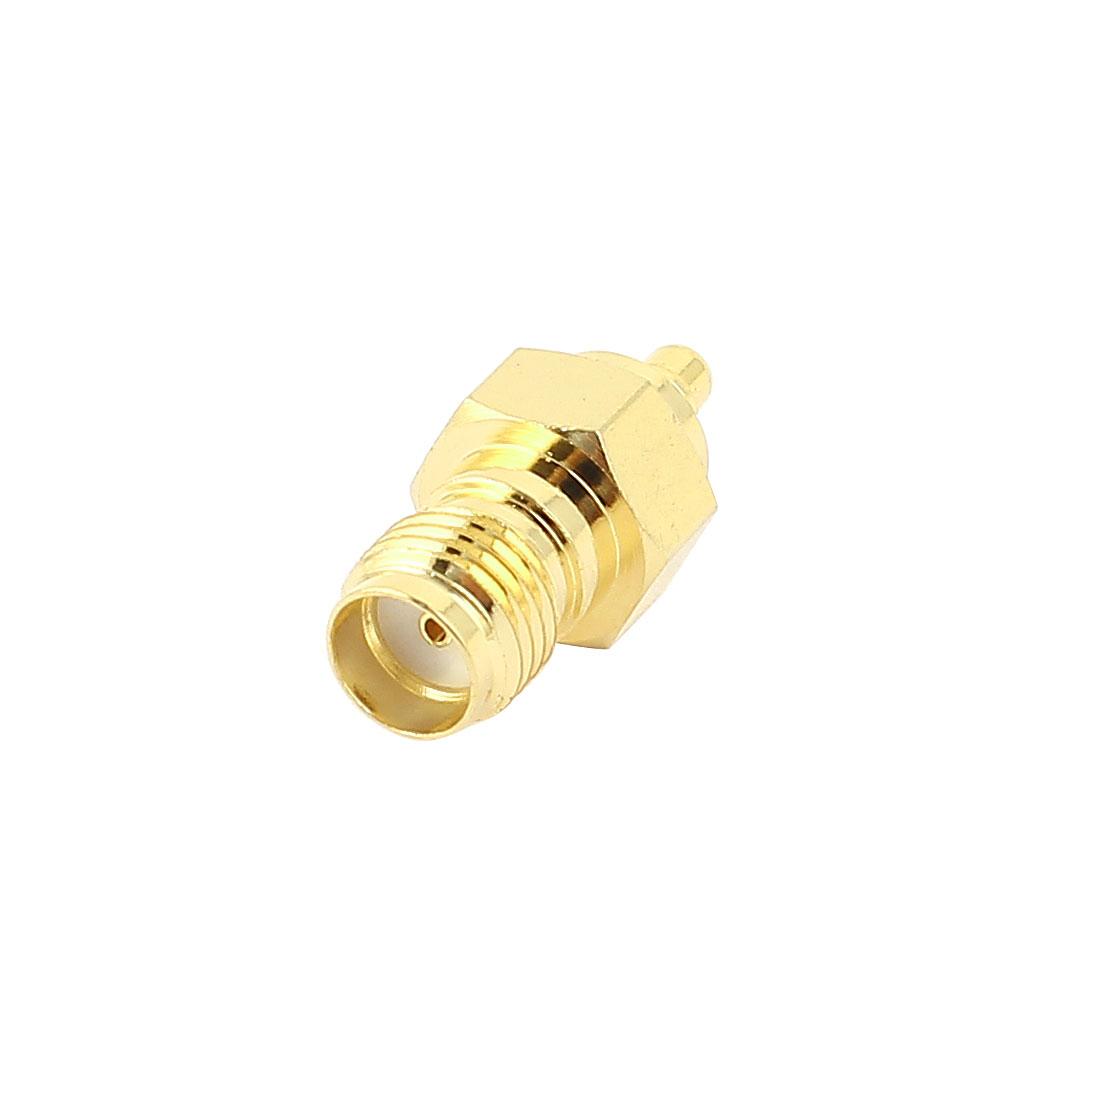 SMA Female Jack to MMCX Male Straight RF Coaxial Adapter Connector